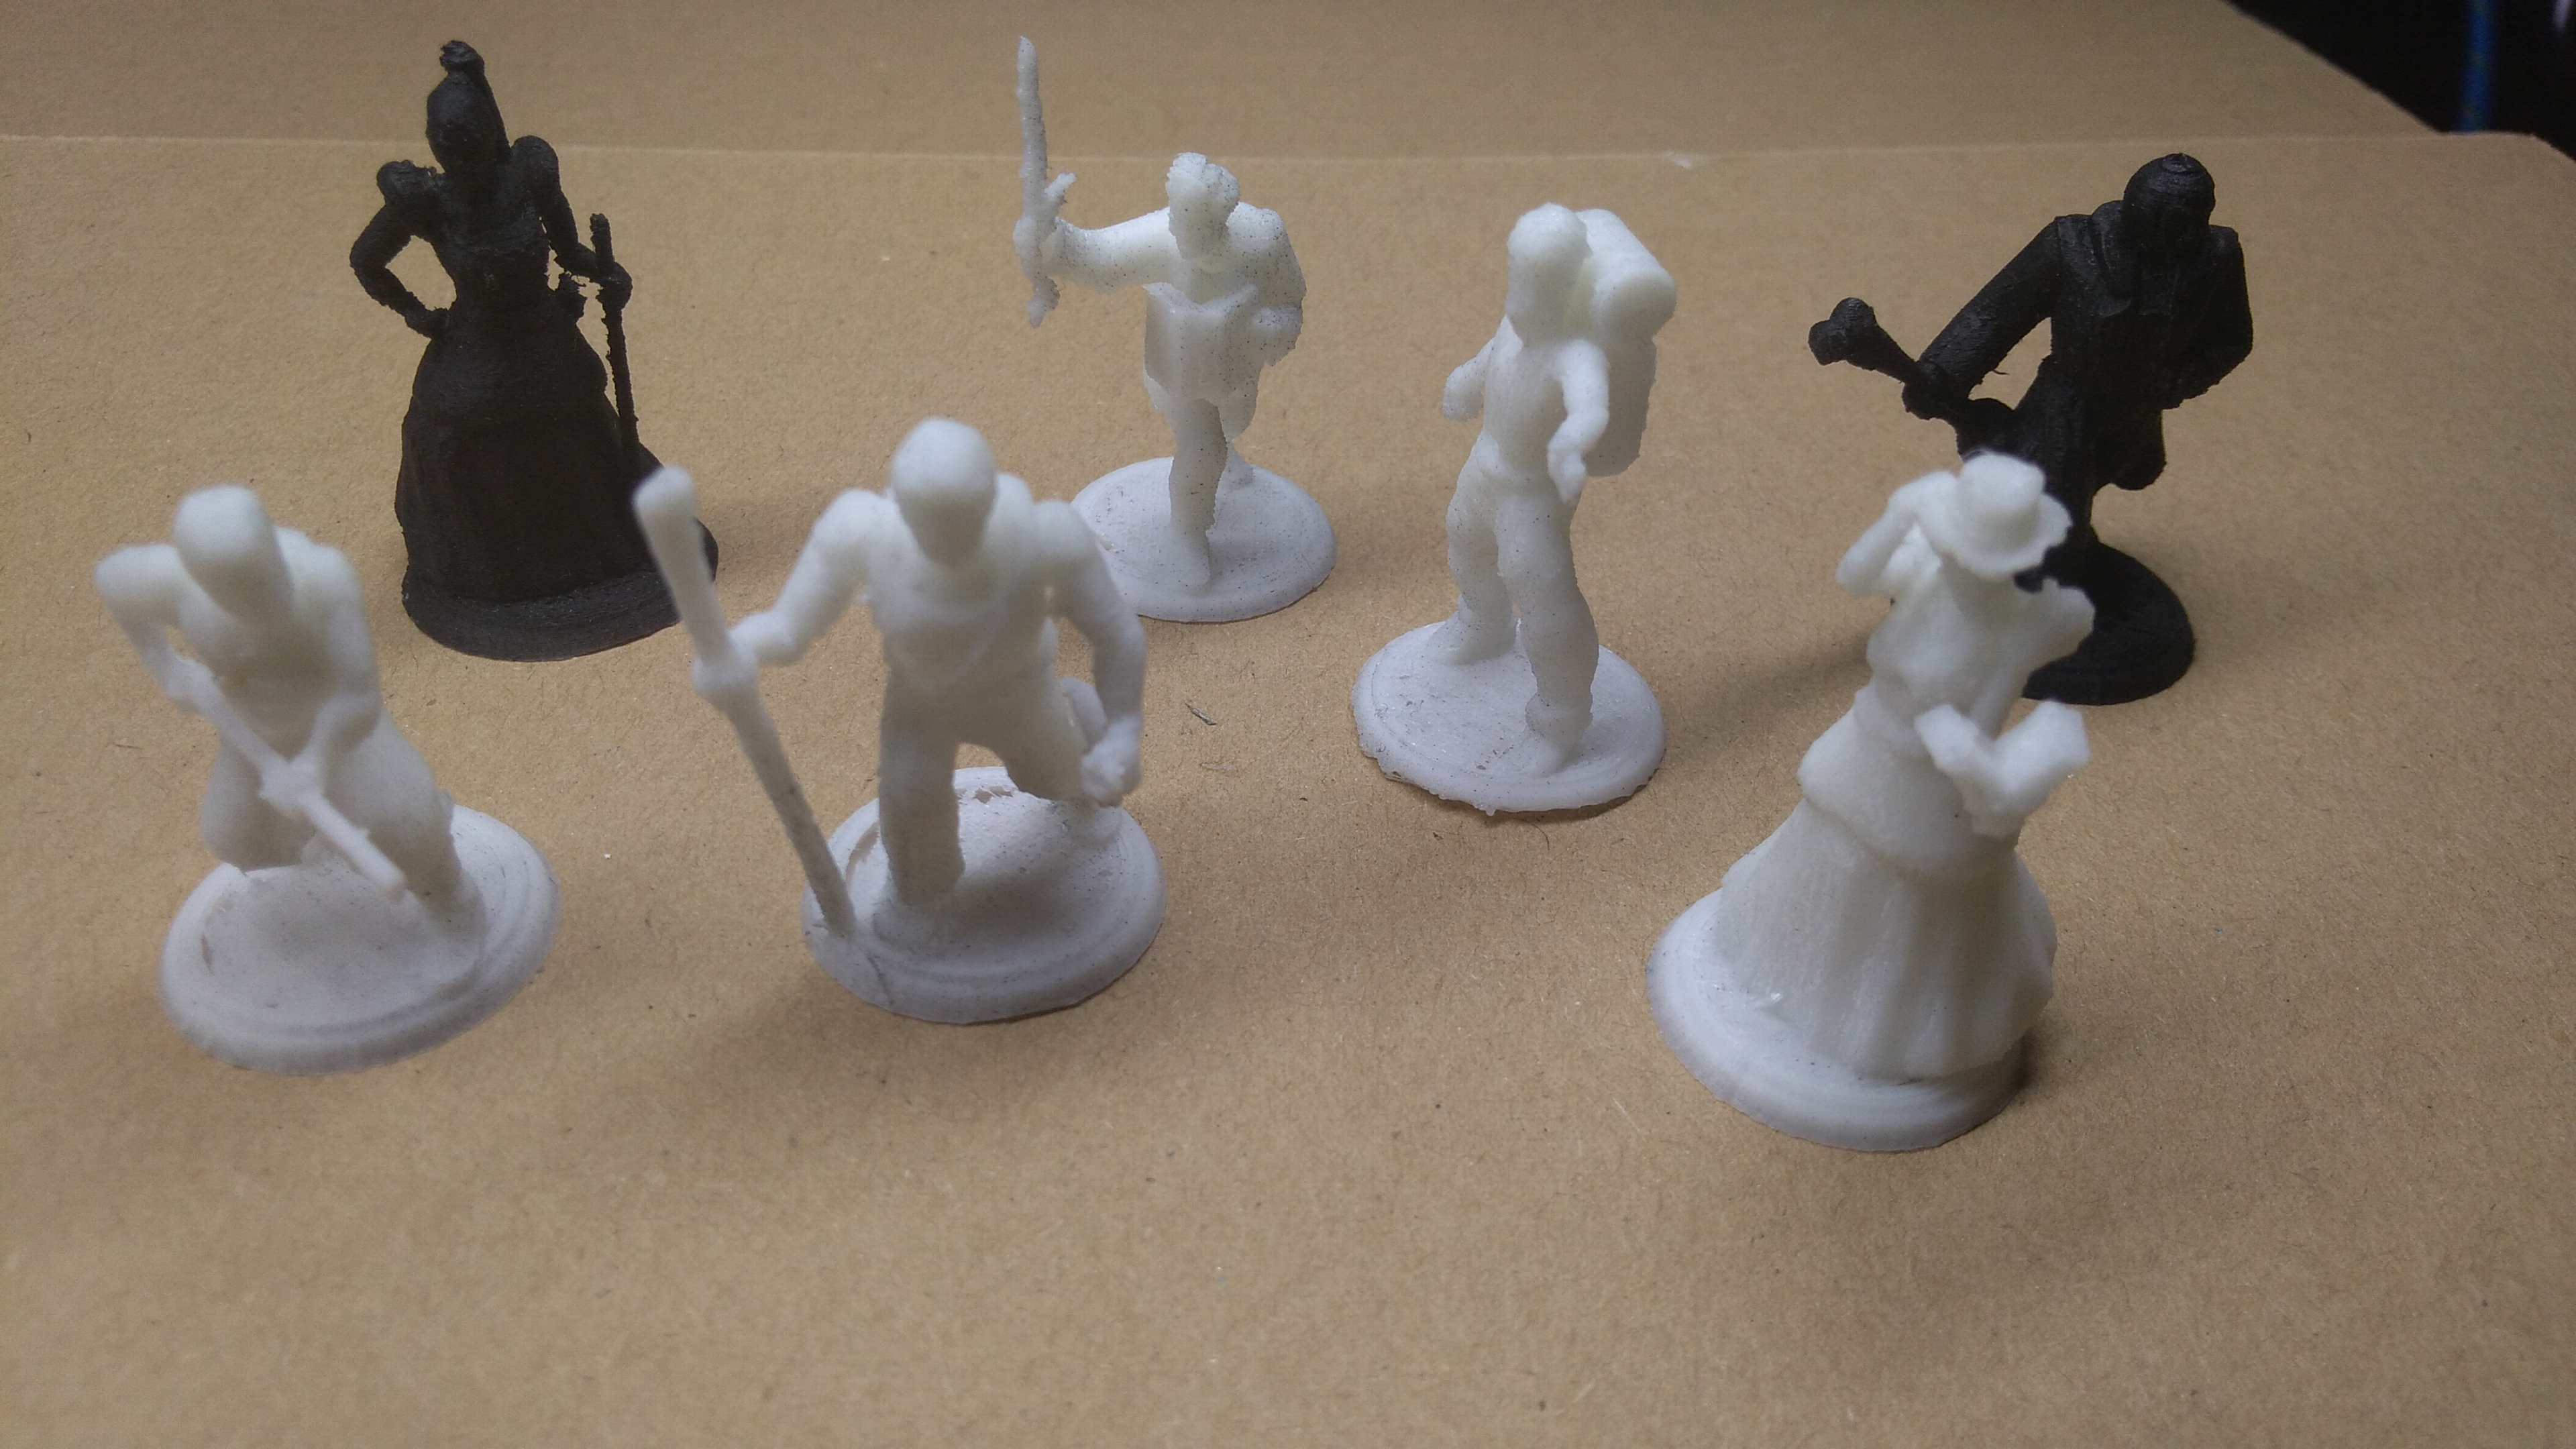 7th Continent proxy miniatures